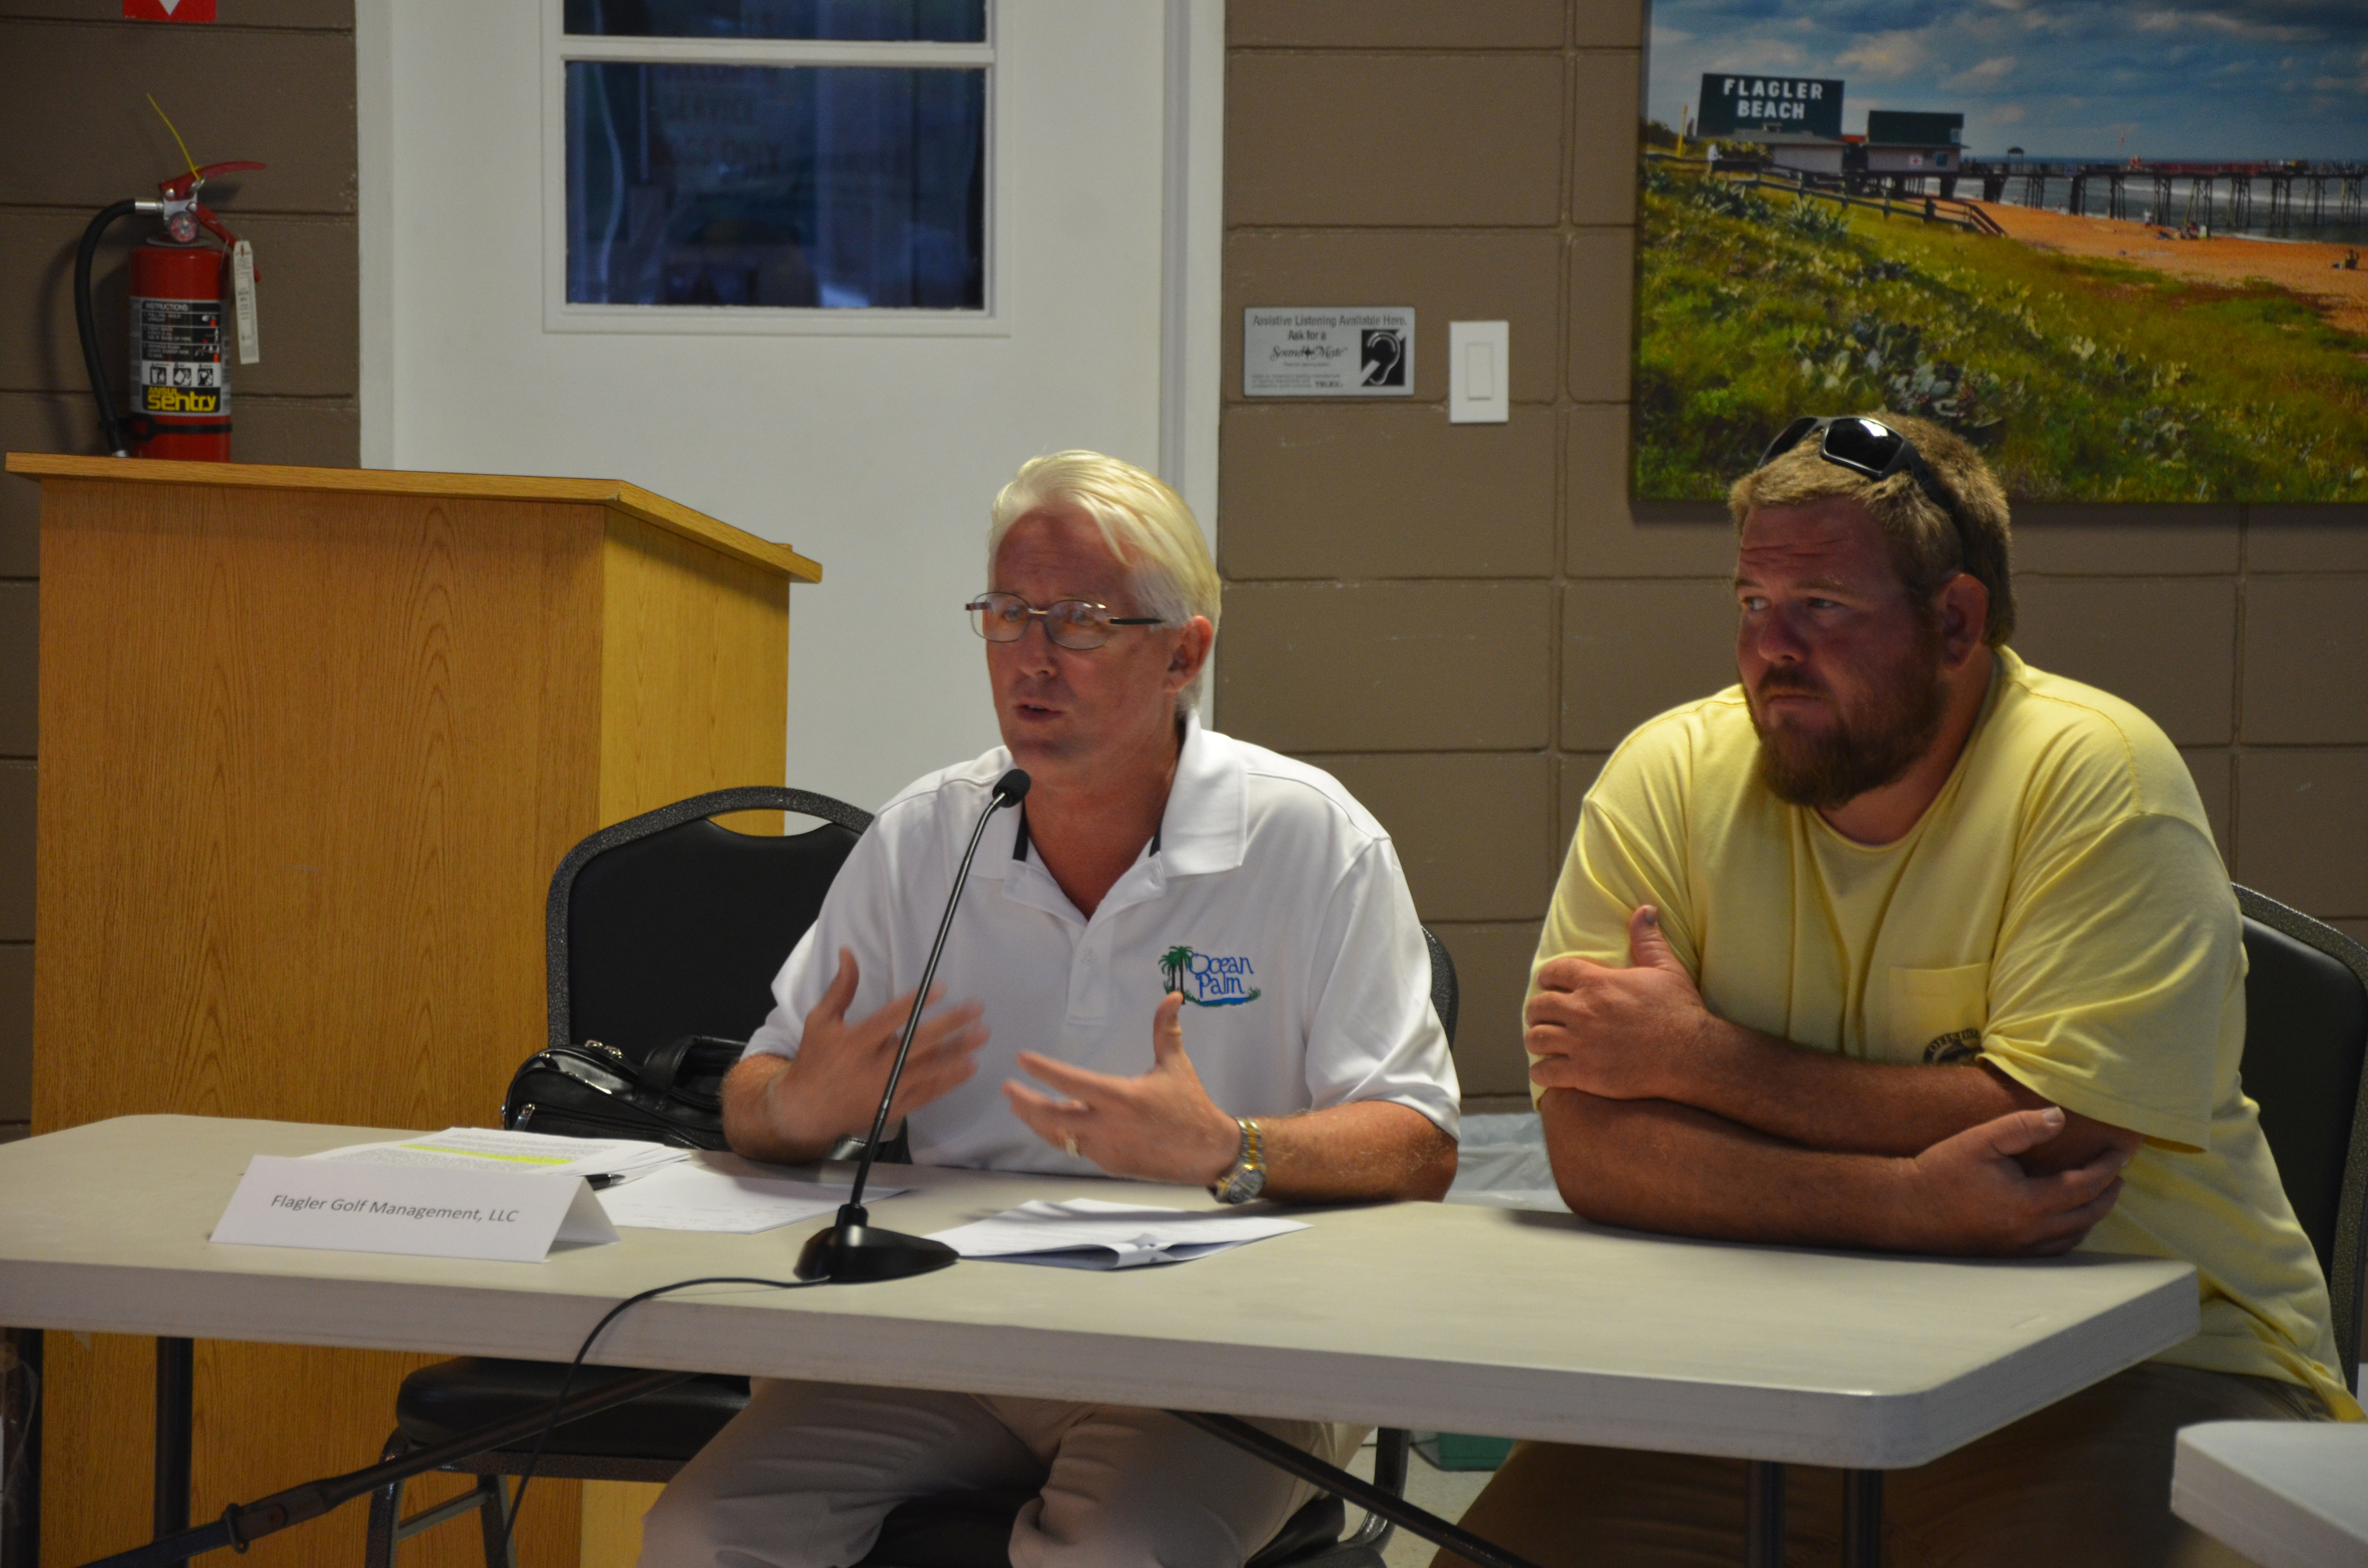 Flagler Golf Management President Terry McManus, left, took responsibility for a more lax accounting approach than city government was willing to put up with at the city-owned golf course leased to McManus's team. But there is still some lack of clarity on certain issues. (c FlaglerLive)